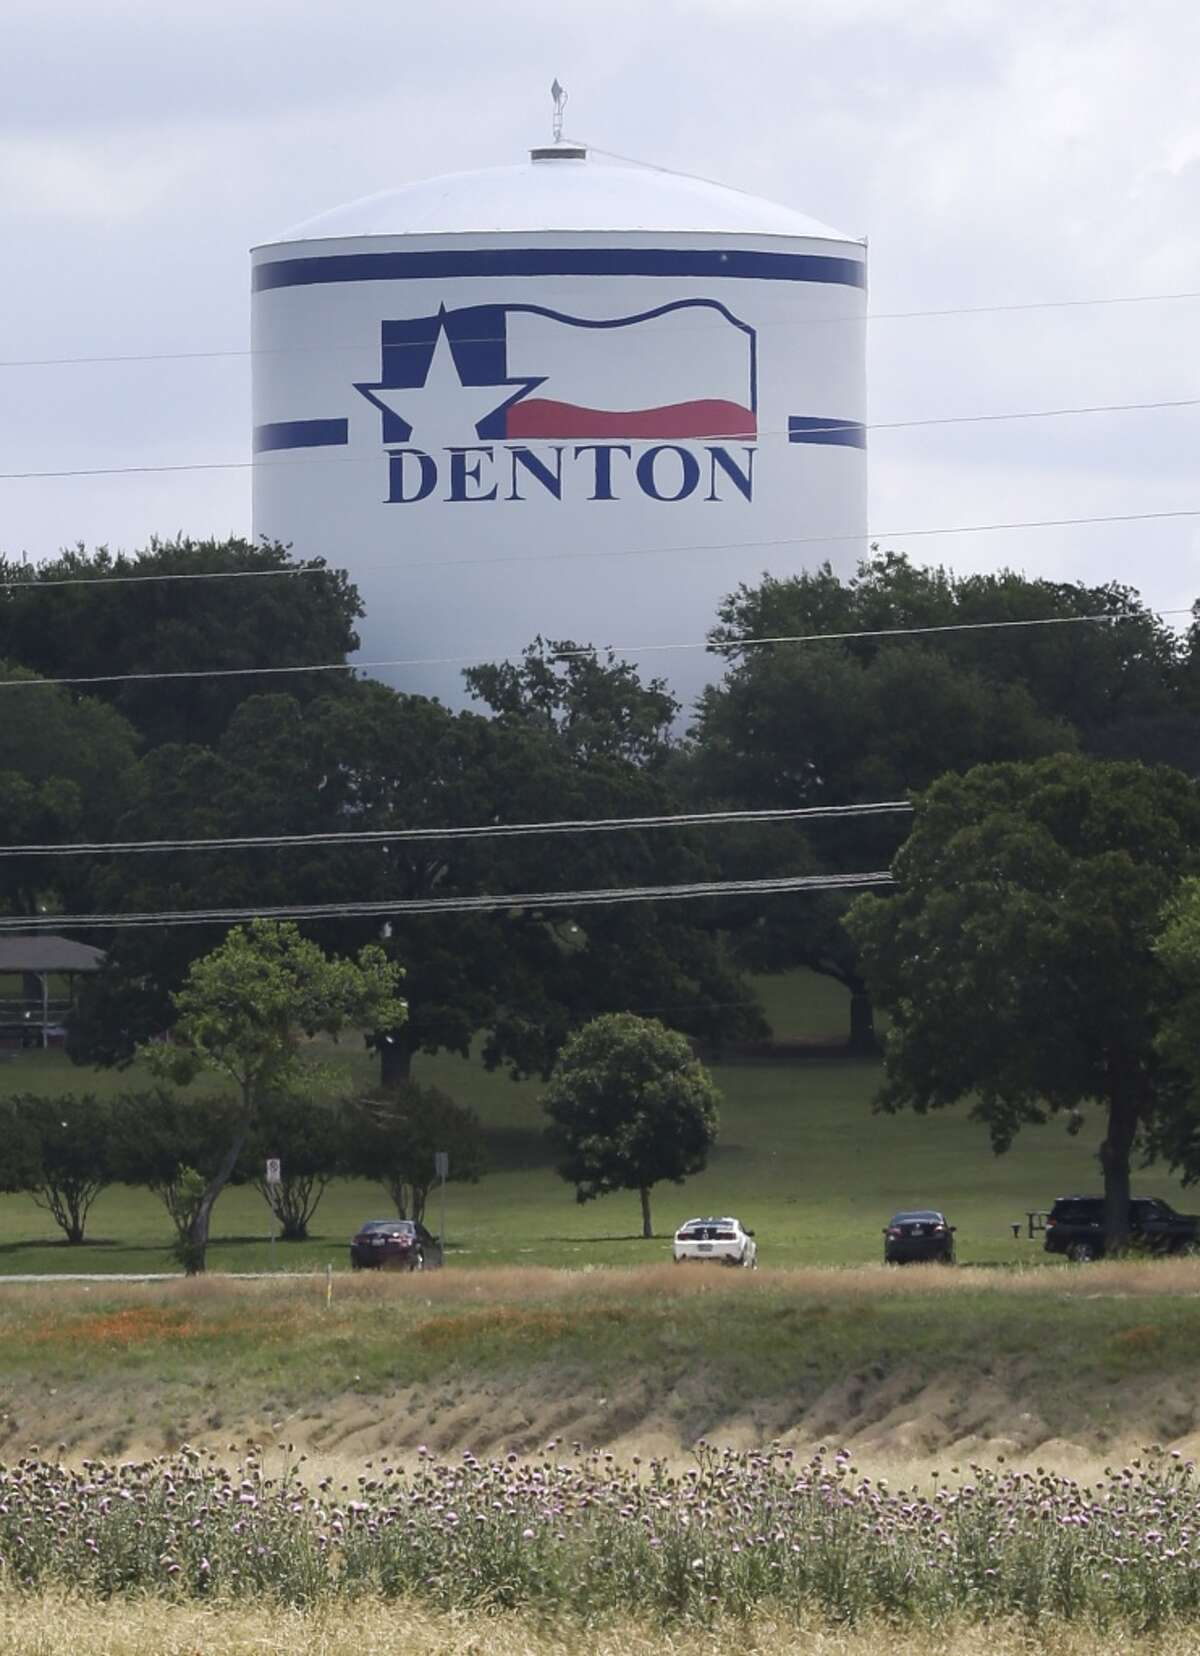 13. Denton Crime(1 is most crime):22 Police(1 is least investment):11 Risk(1 is highest):22